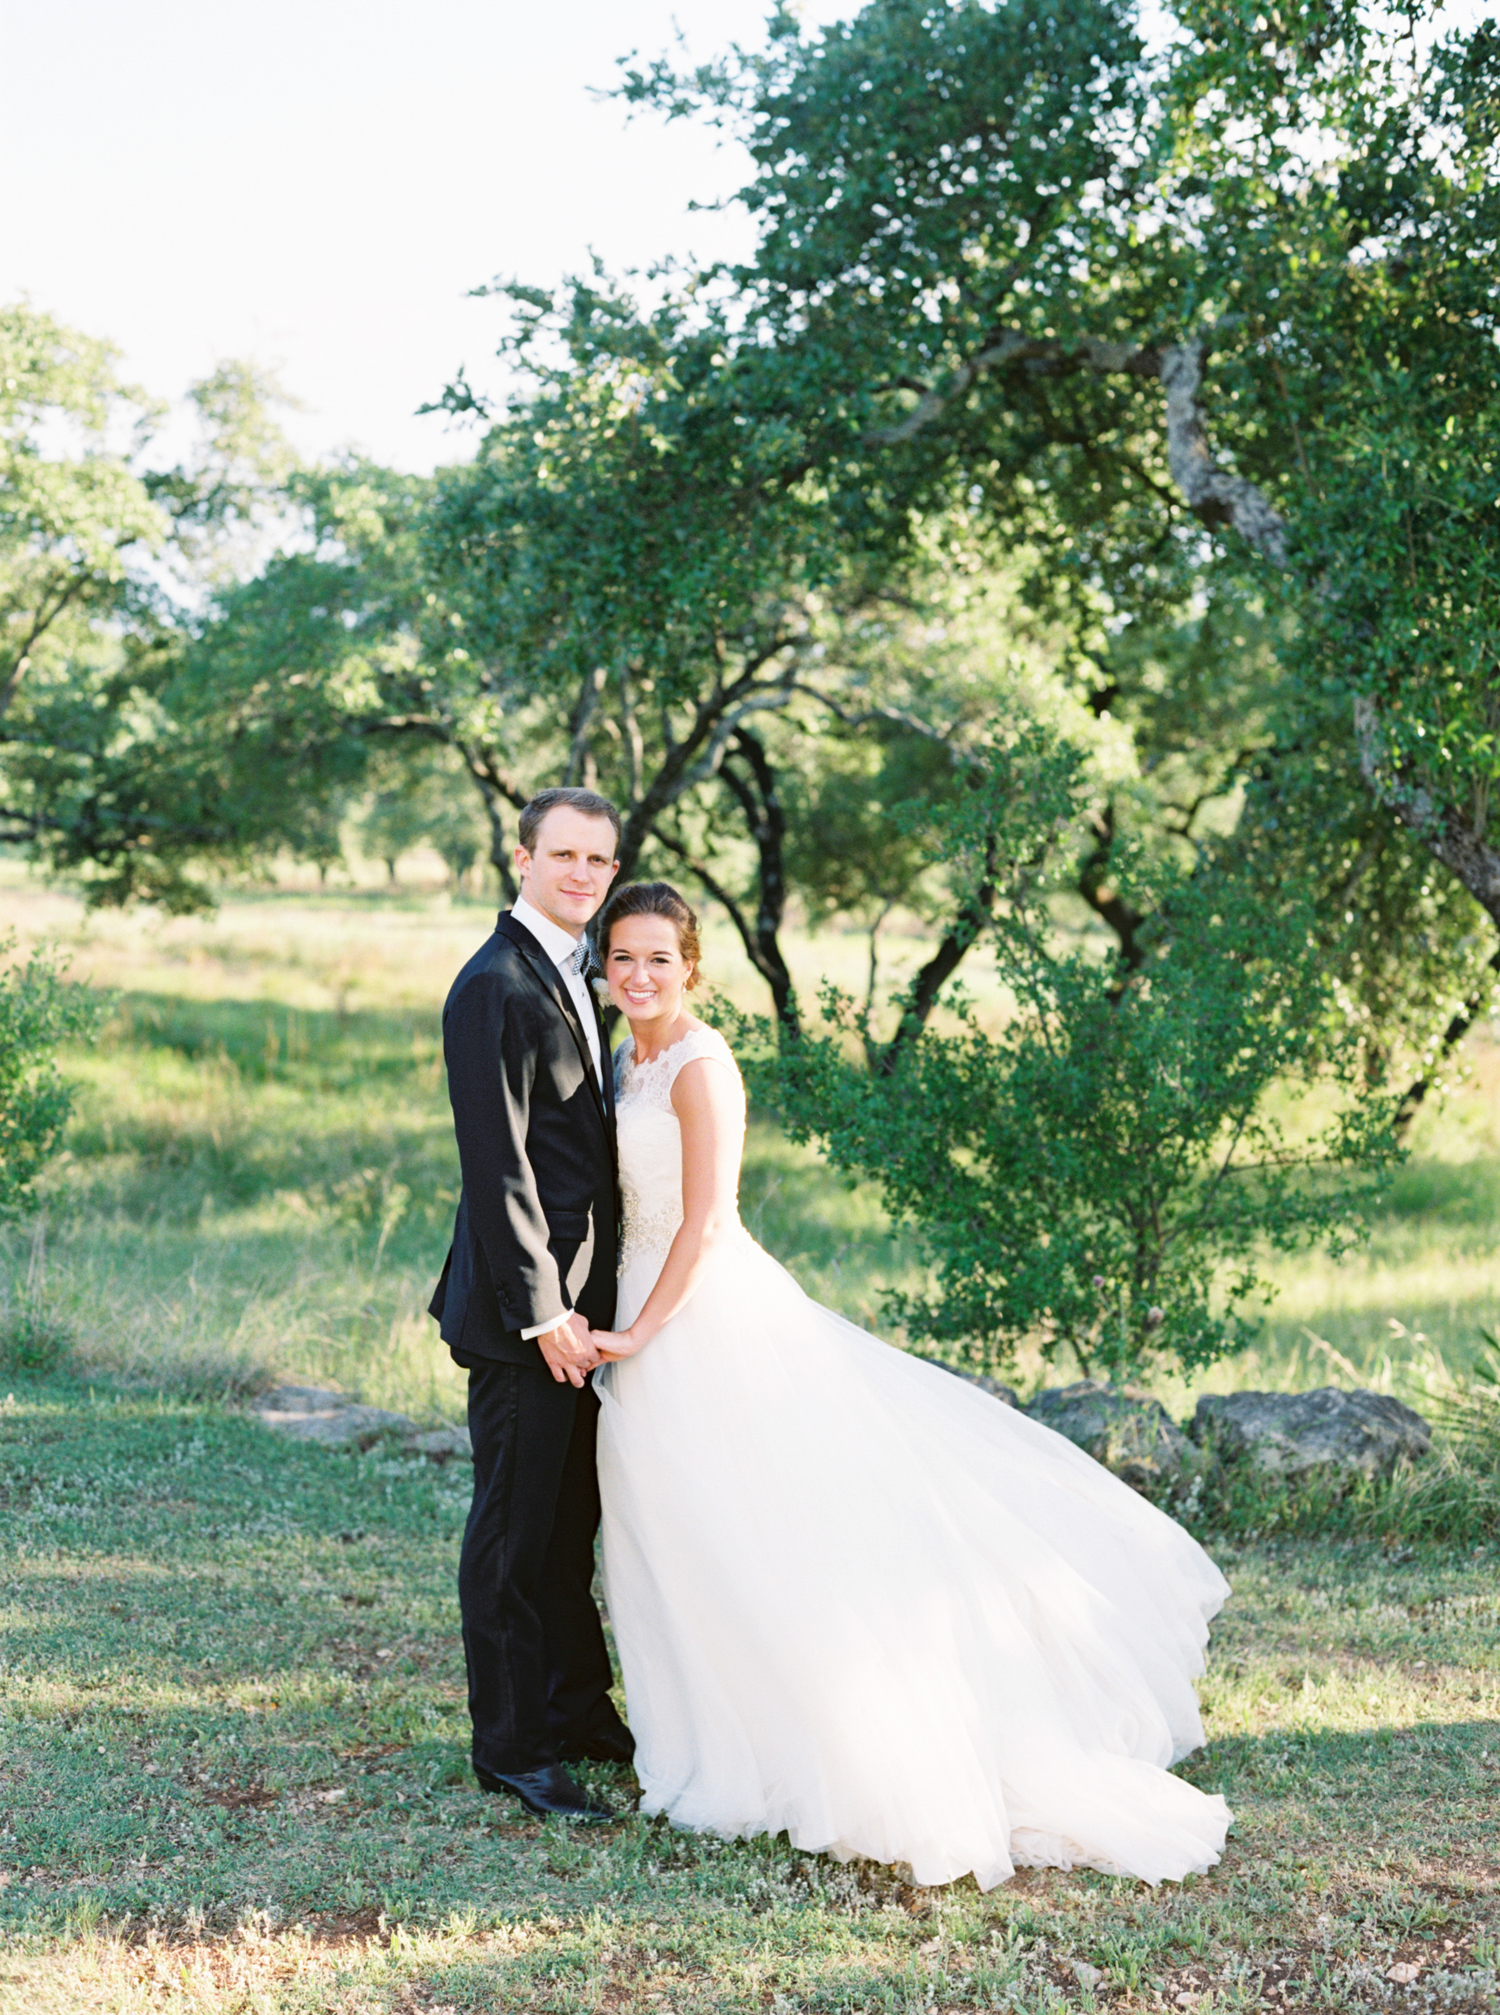 AUSTIN WEDDING PHOTOGRAPHER PHOTO-89.jpg